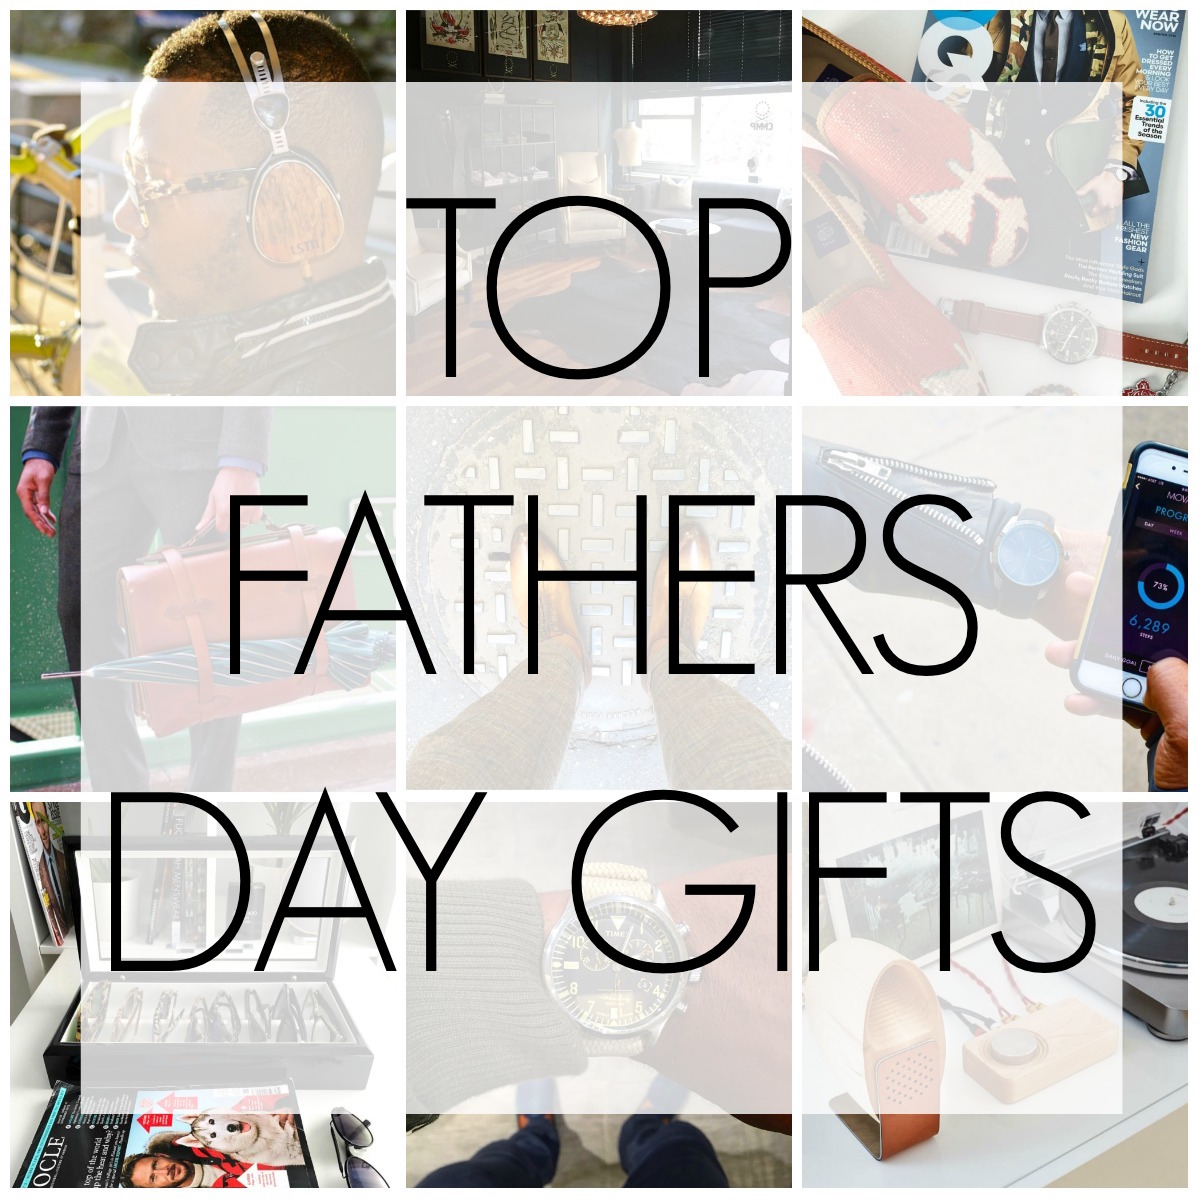 Top Fathers Day Gifts He Will Love